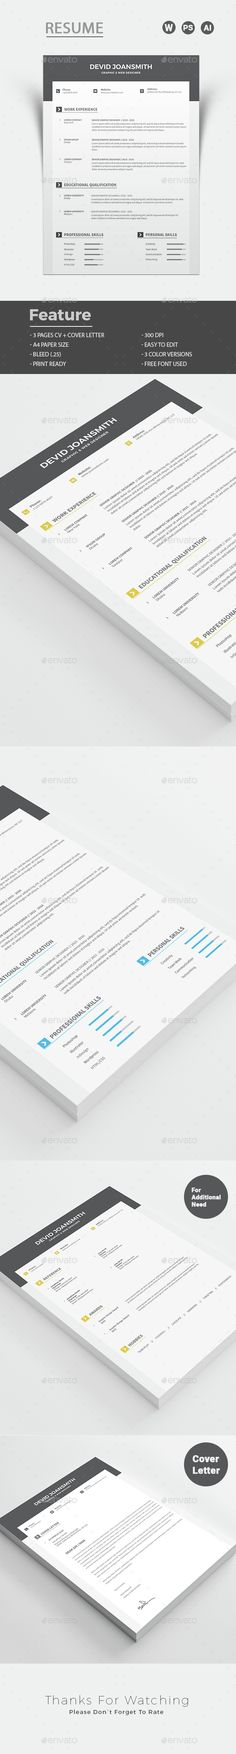 Resume Pinterest Free cover letter, Colours and Creative resume - elegant resume templates